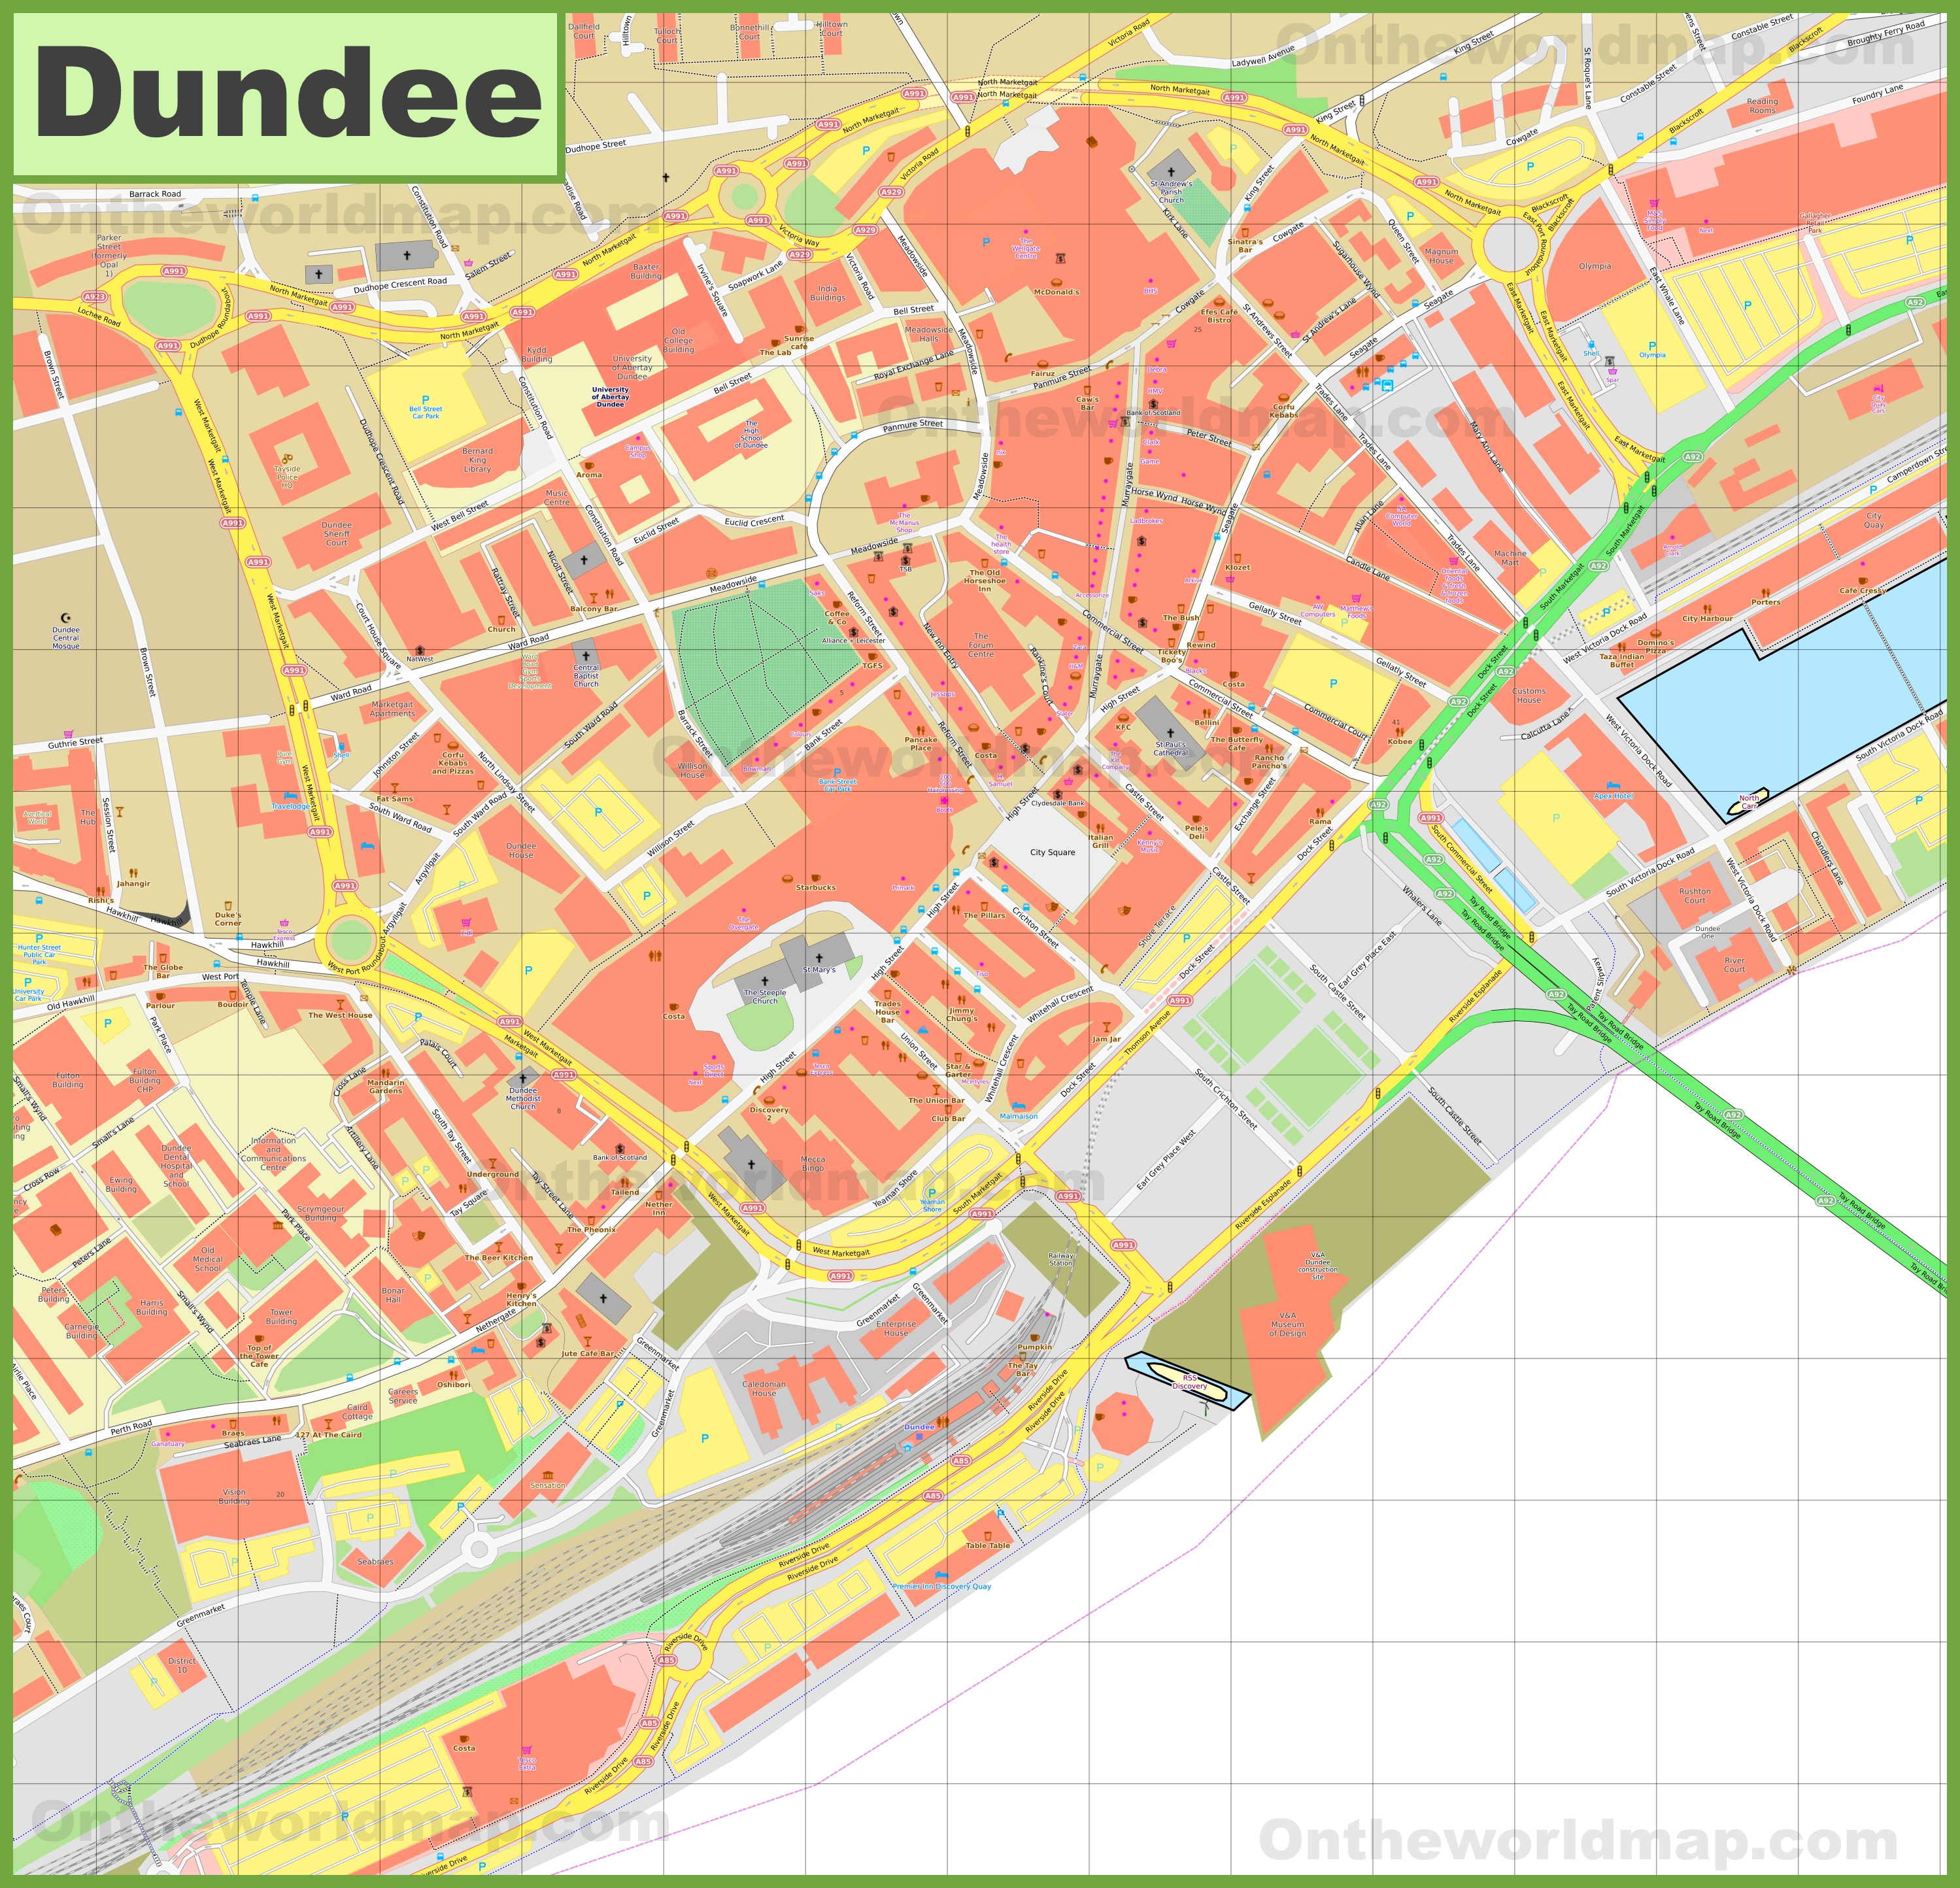 Dundee city center map